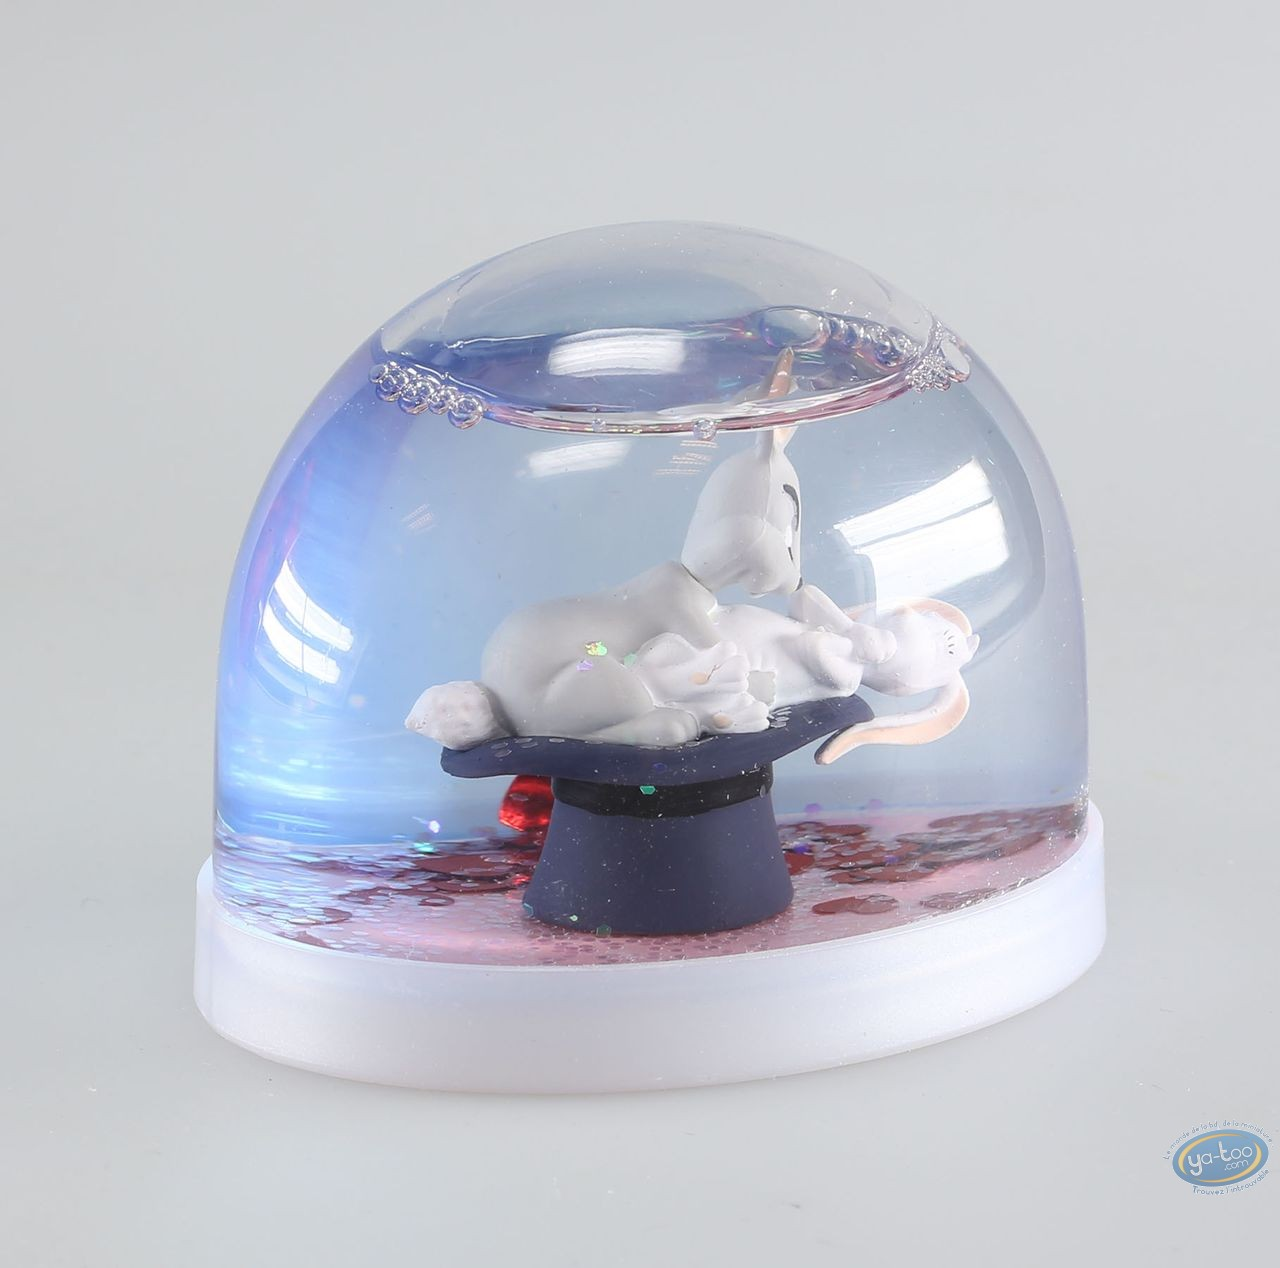 Deco, Show Lapin : Waterdome : Show Lapin